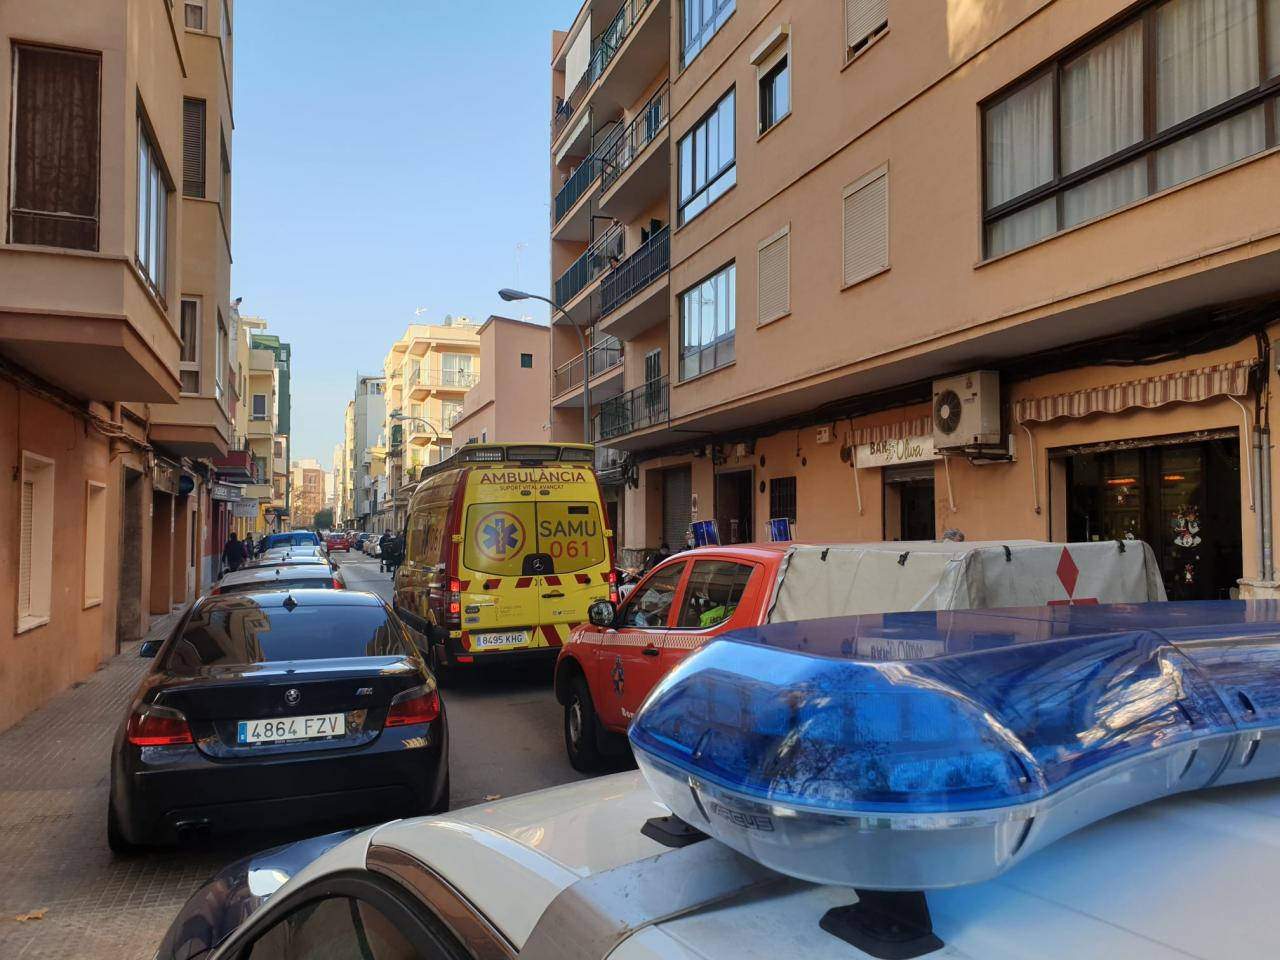 Accidente en palma